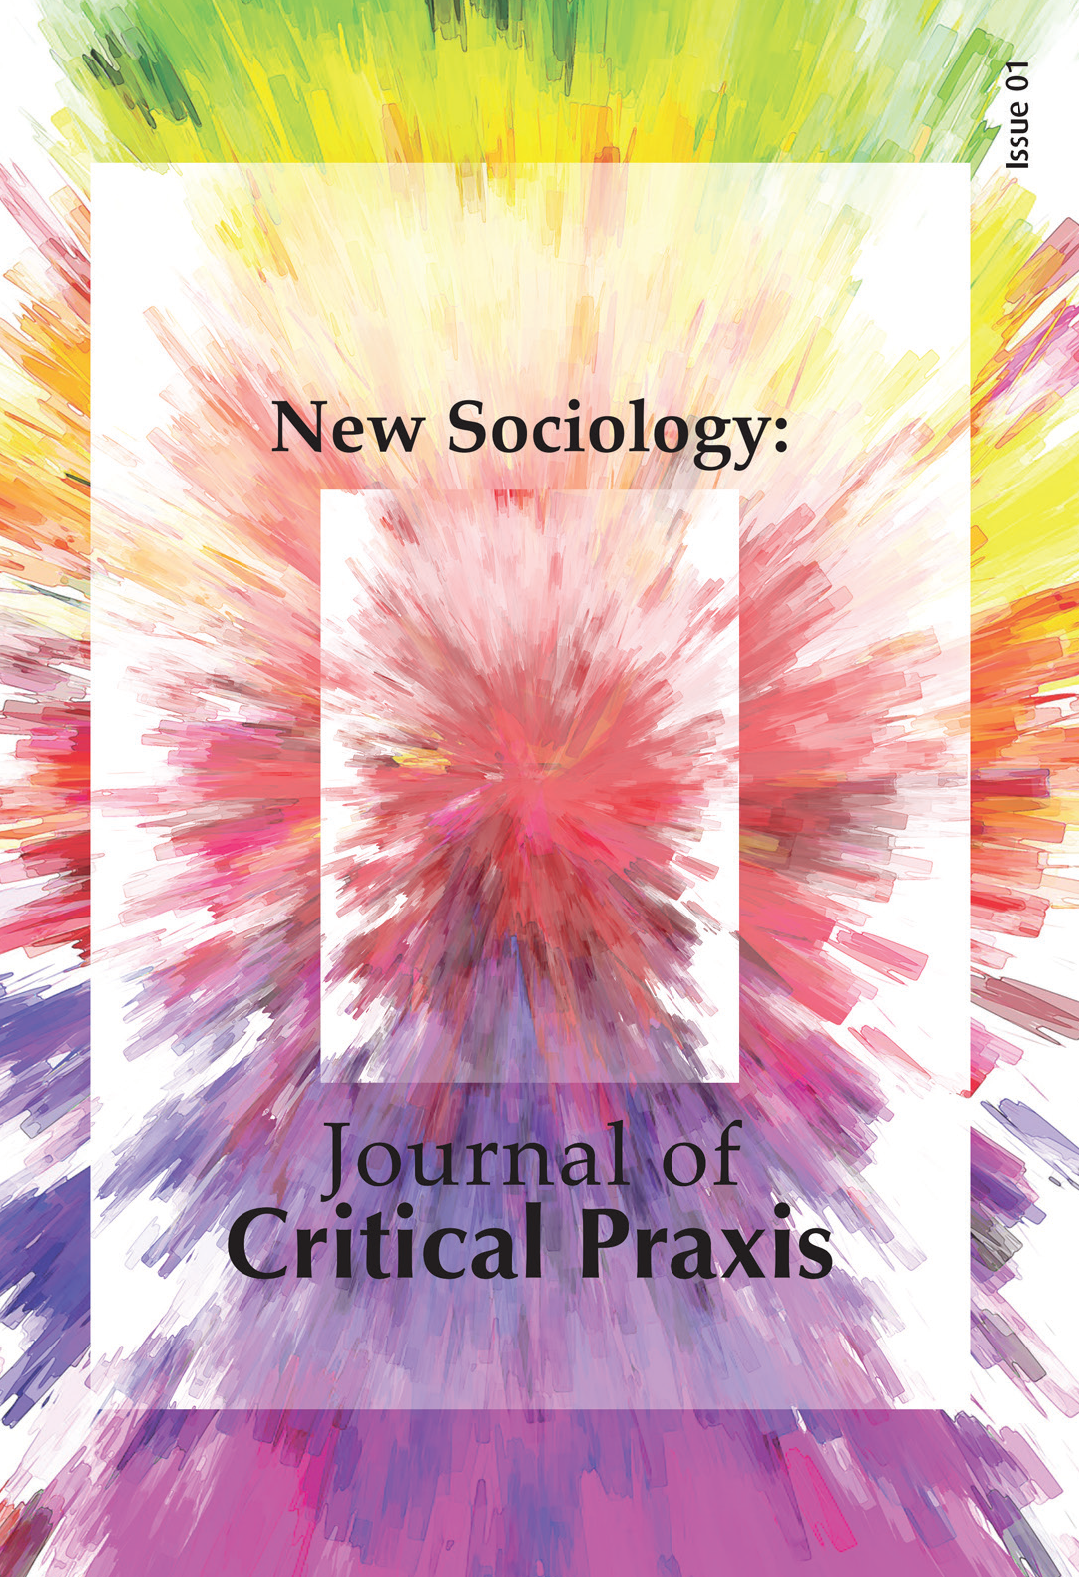 Cover image for New Sociology: Journal of Critical Praxis Volume 1, number 1